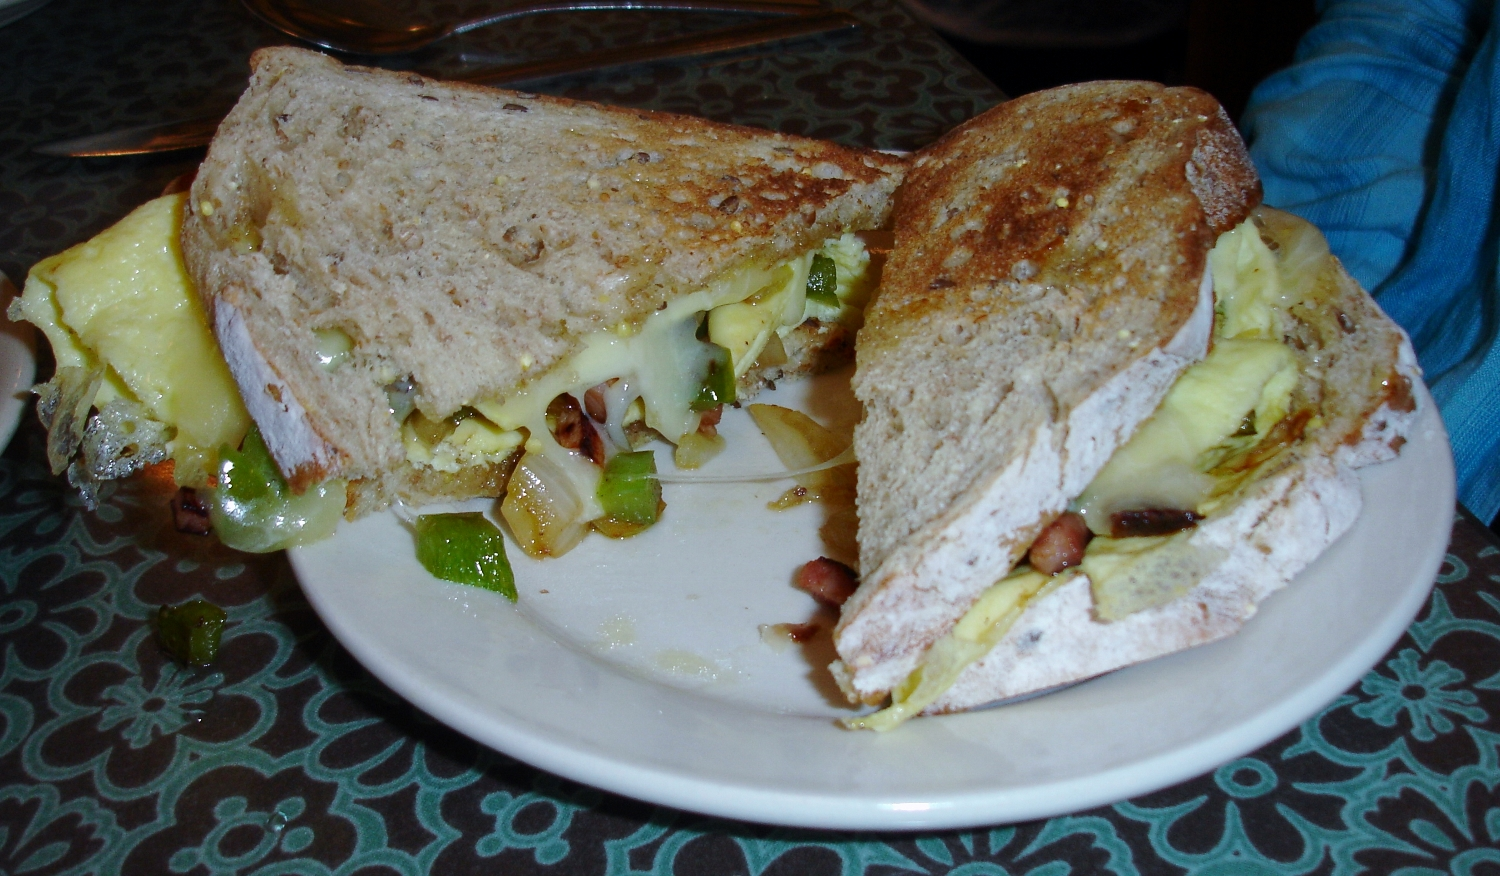 Western Sandwich with Cheese, served on multigrain toast